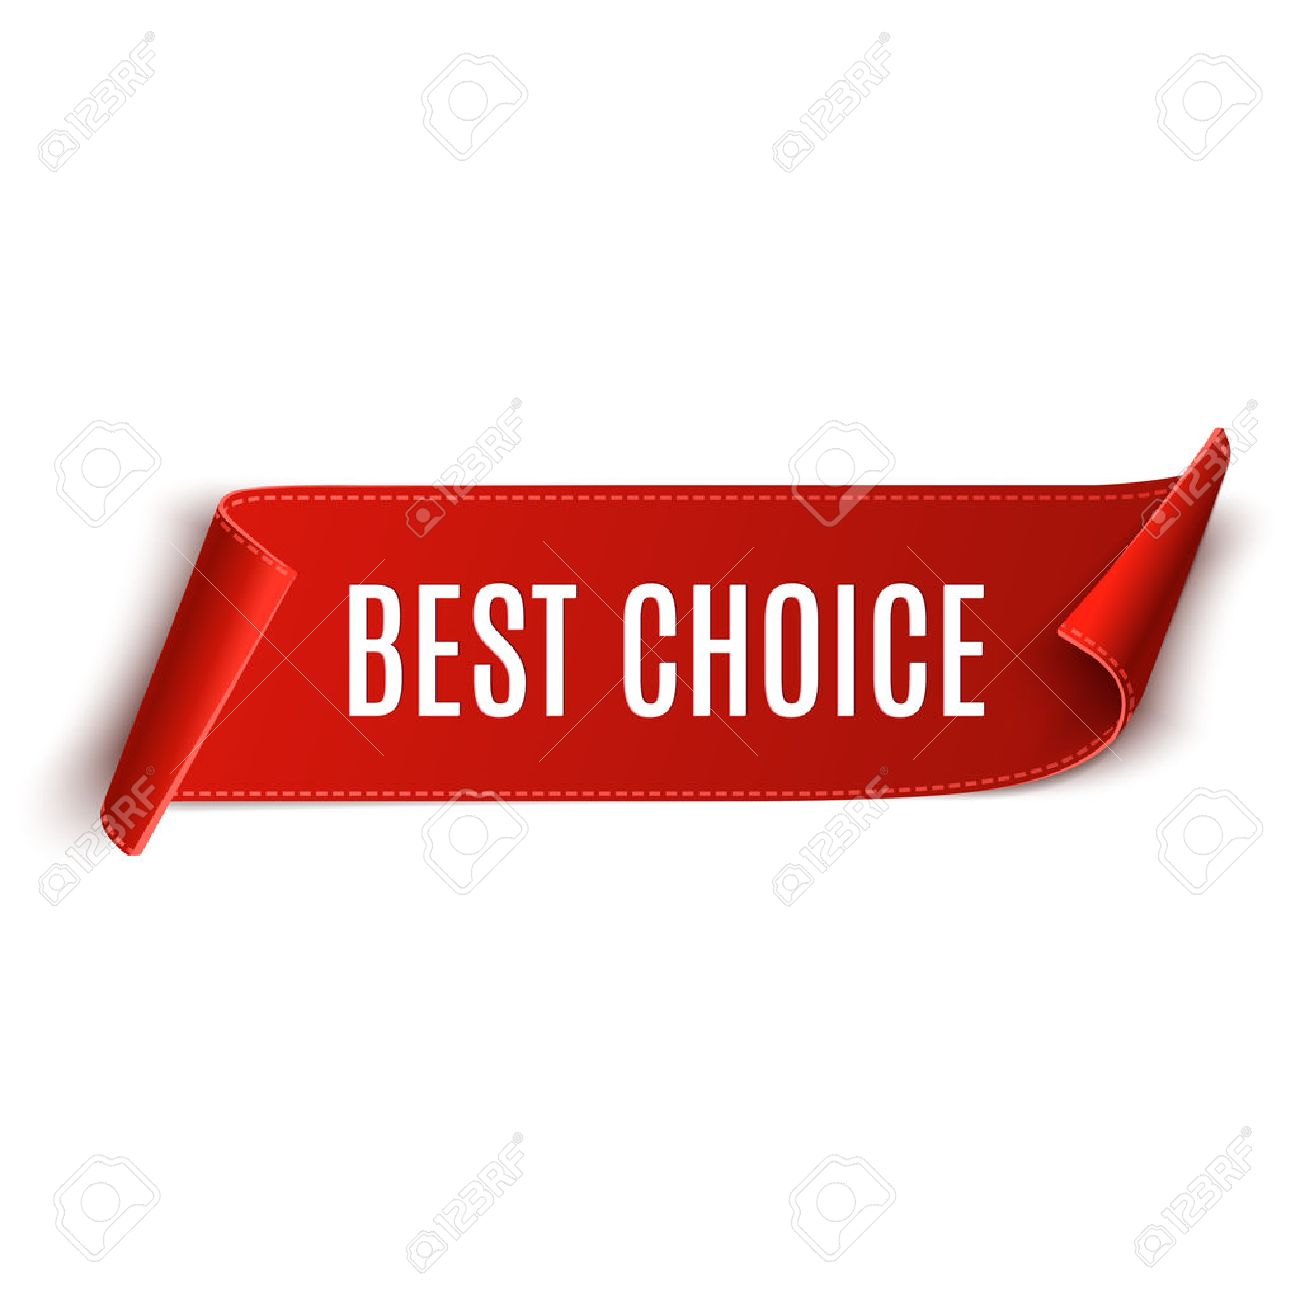 Best choice vector banner. Red curved paper banner isolated on white background. Ribbon - 51635711